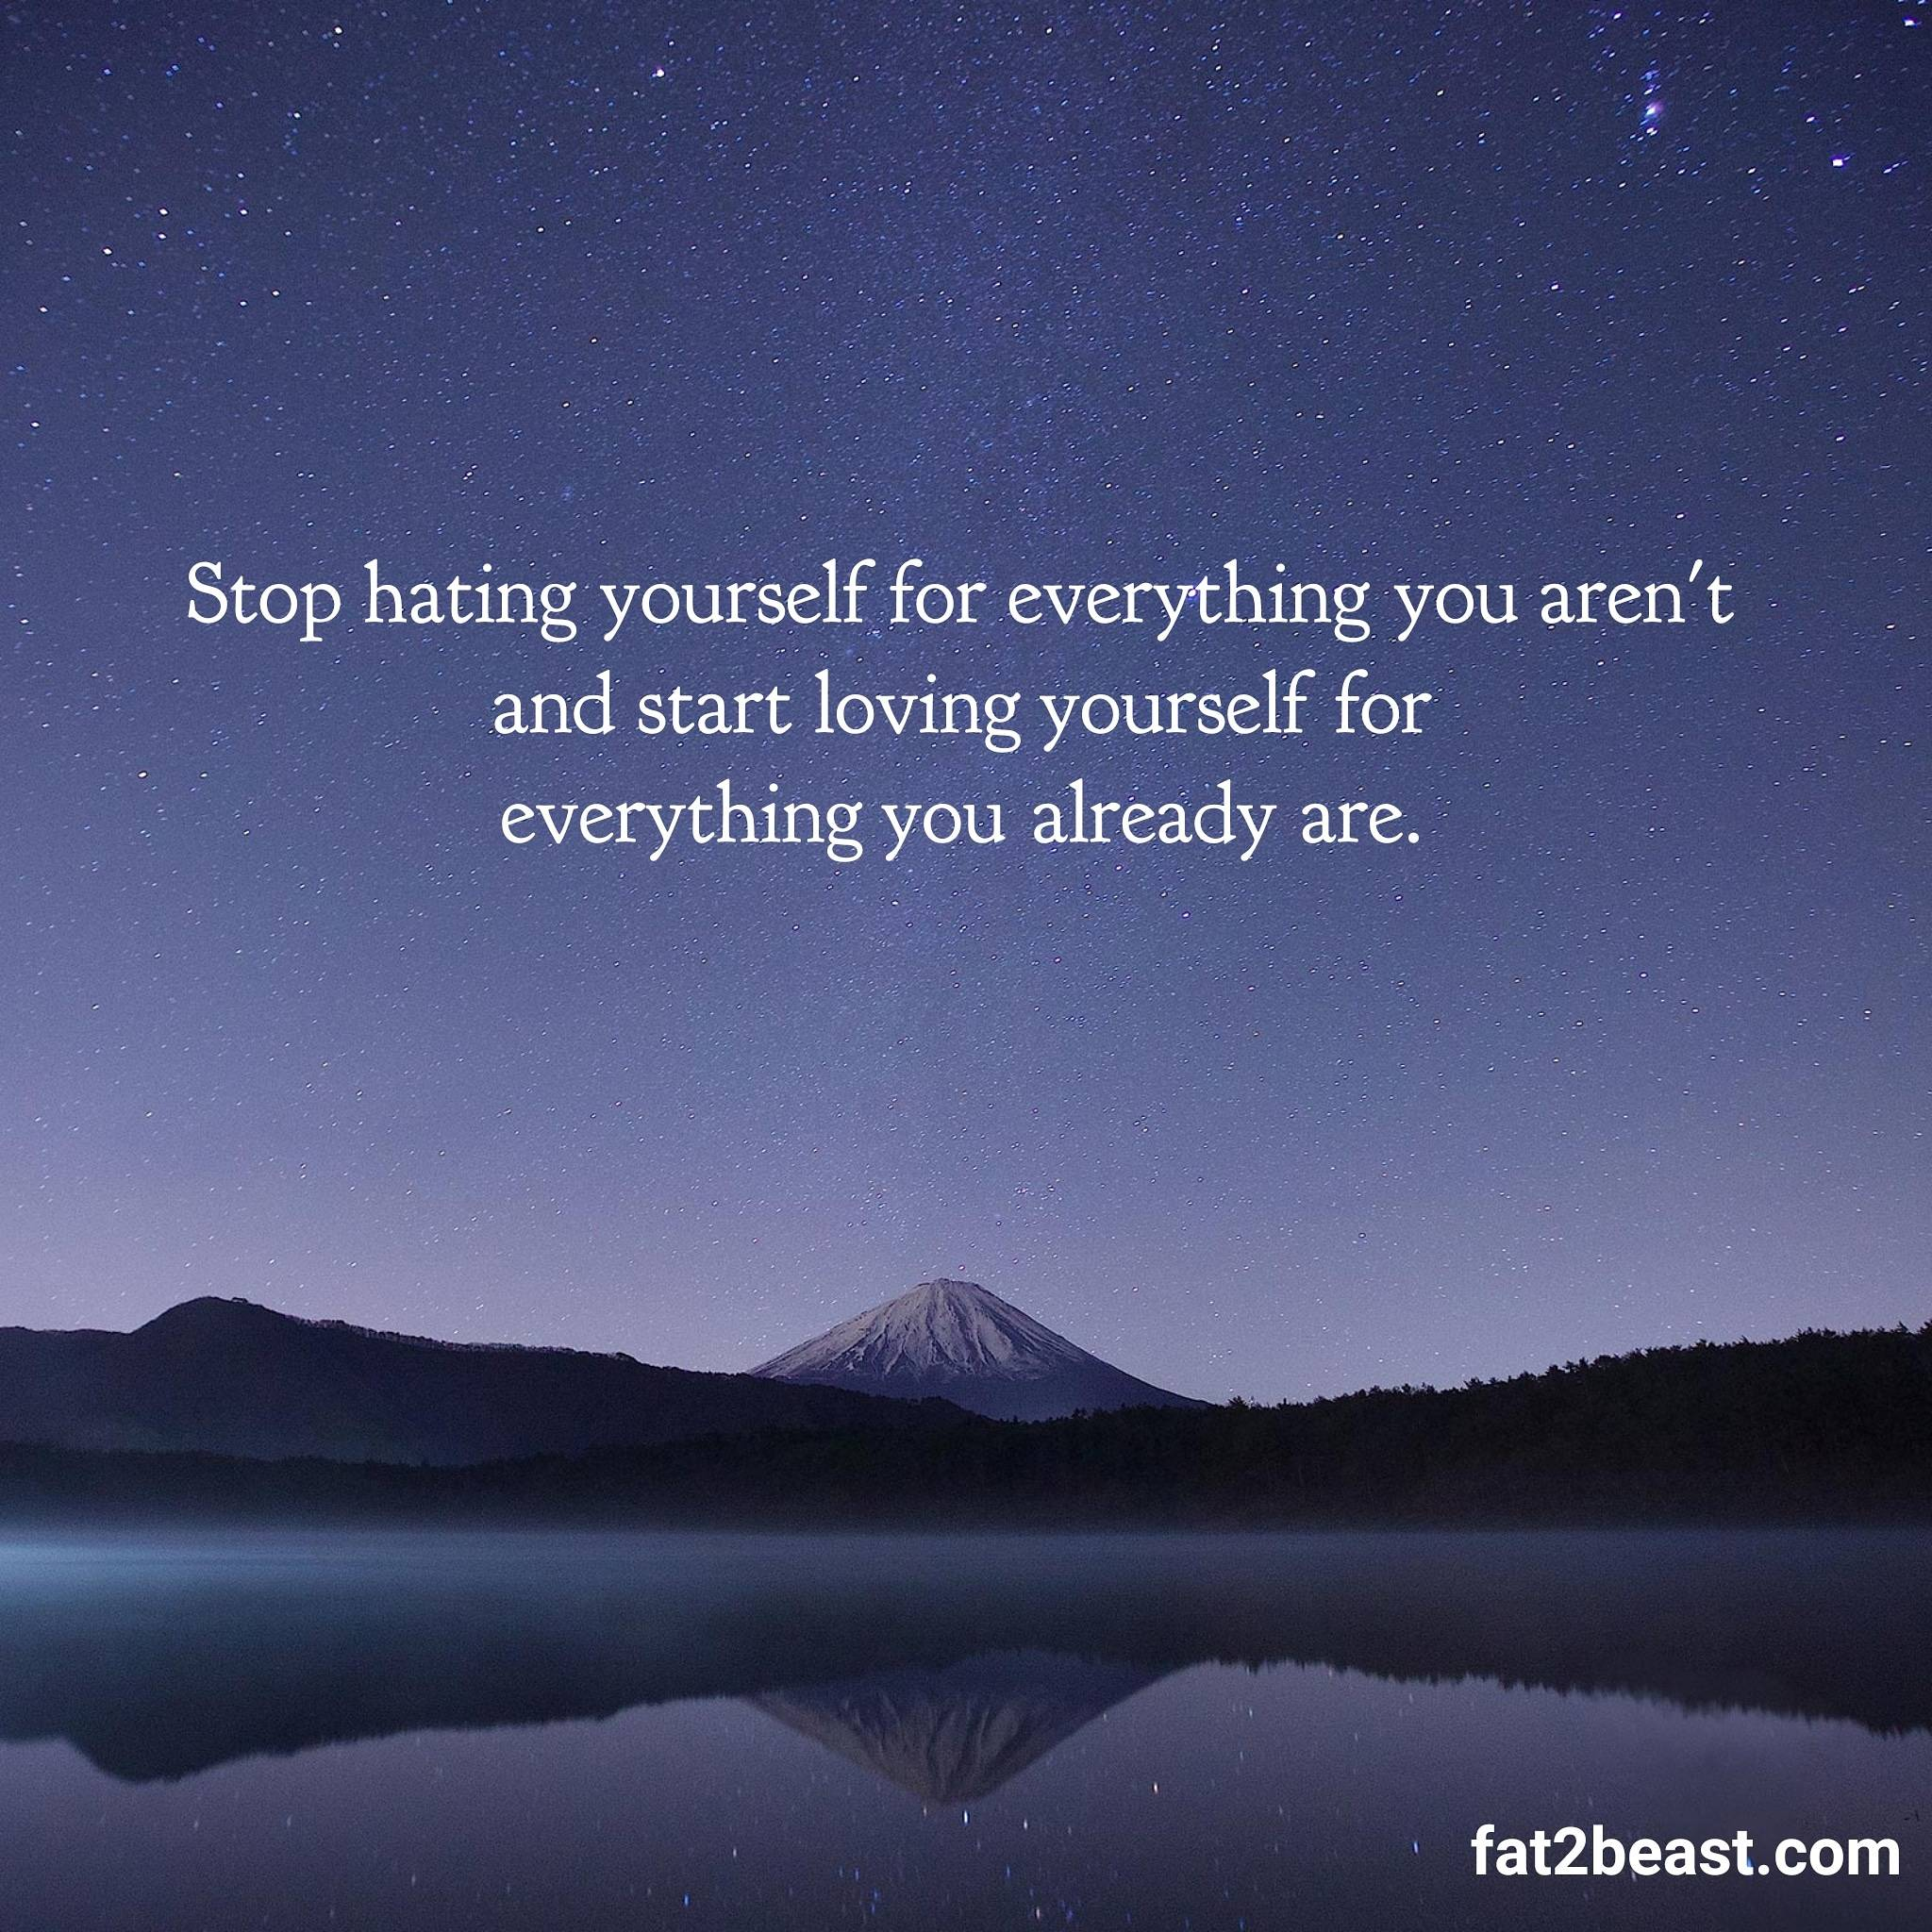 [IMAGE] Stop hating yourself for everything you aren't, start loving yourself for everything you are.